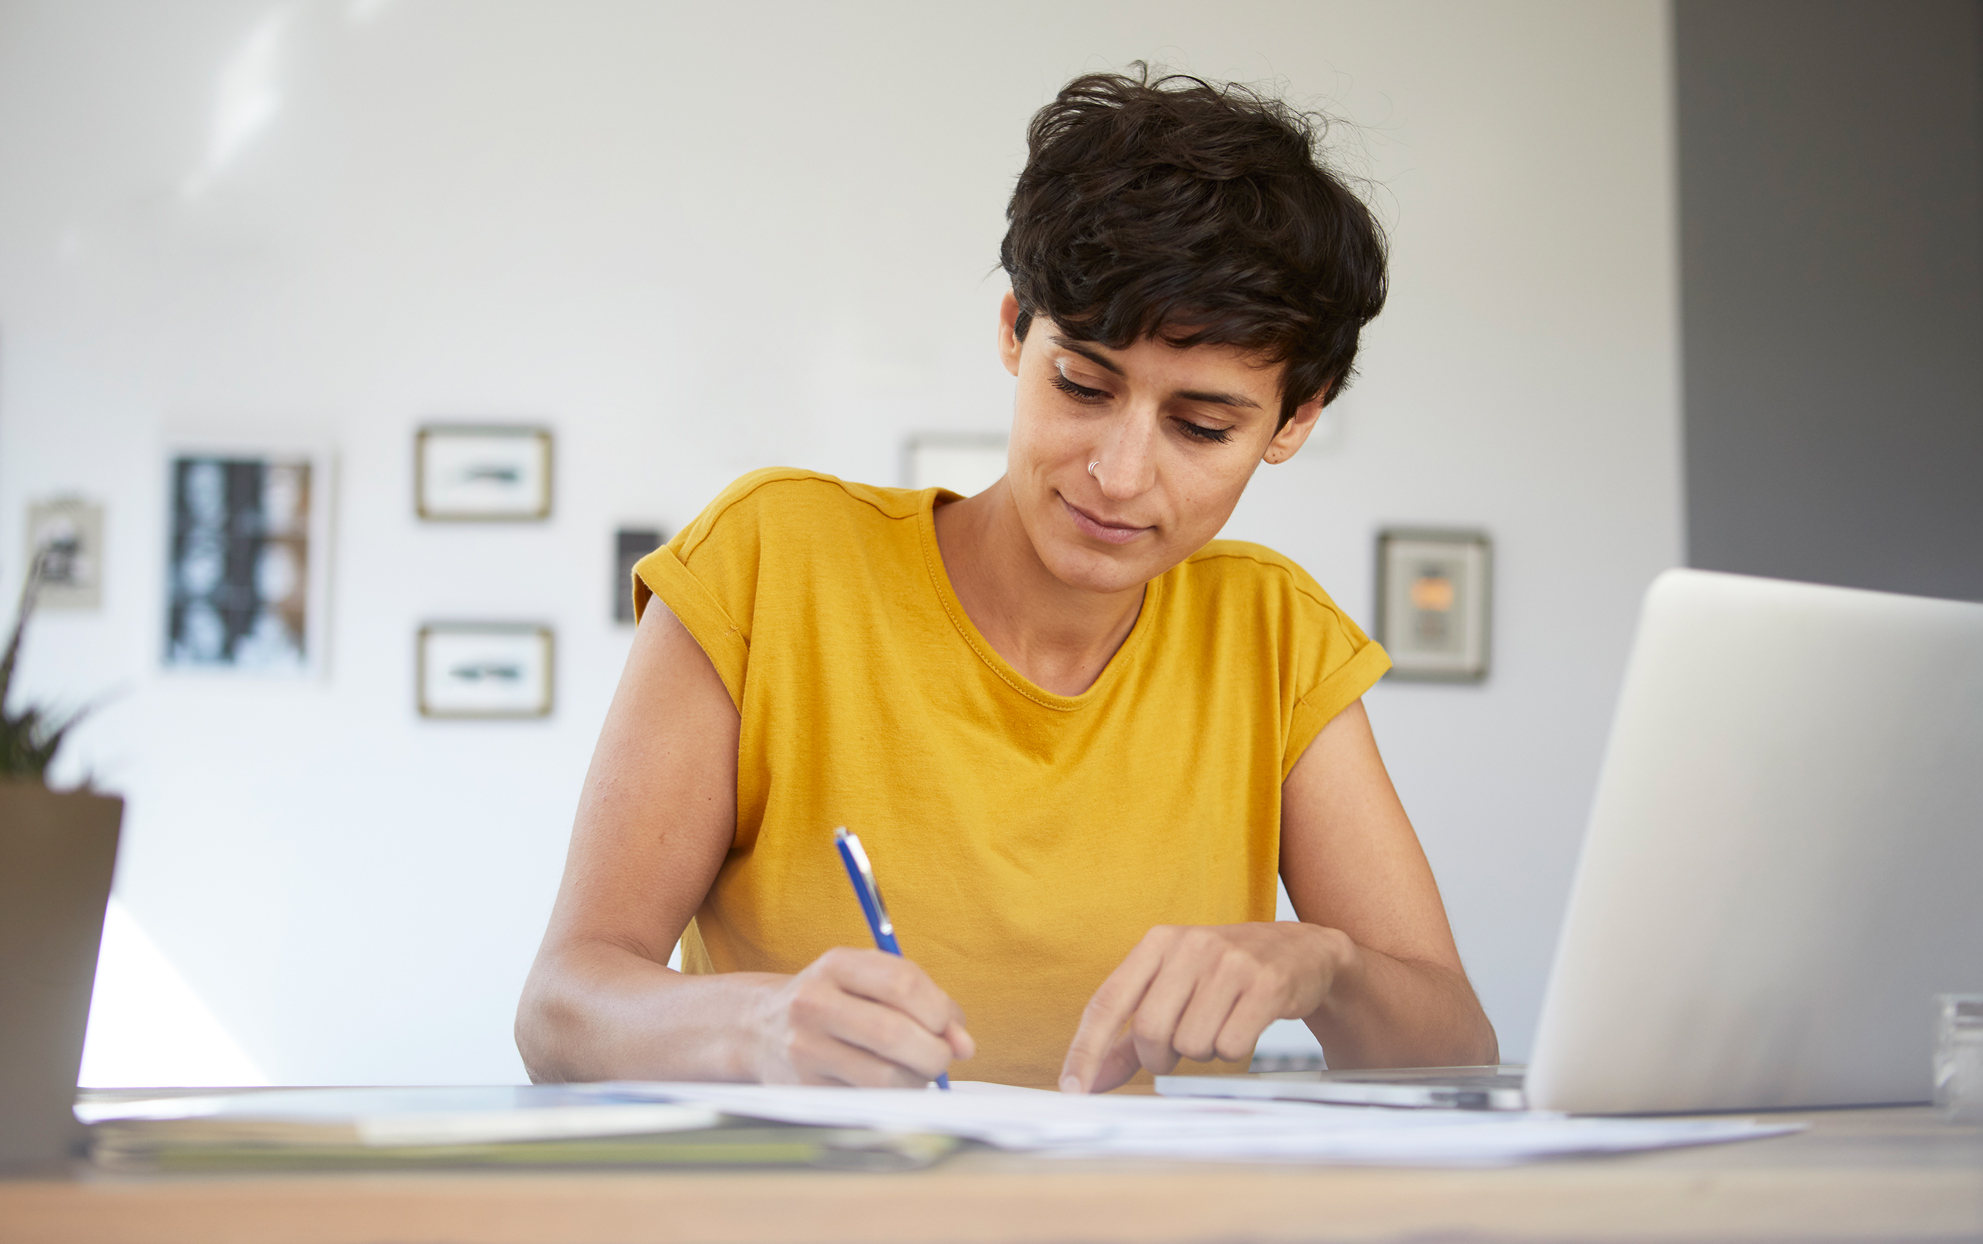 Woman with short hair writing near a laptop